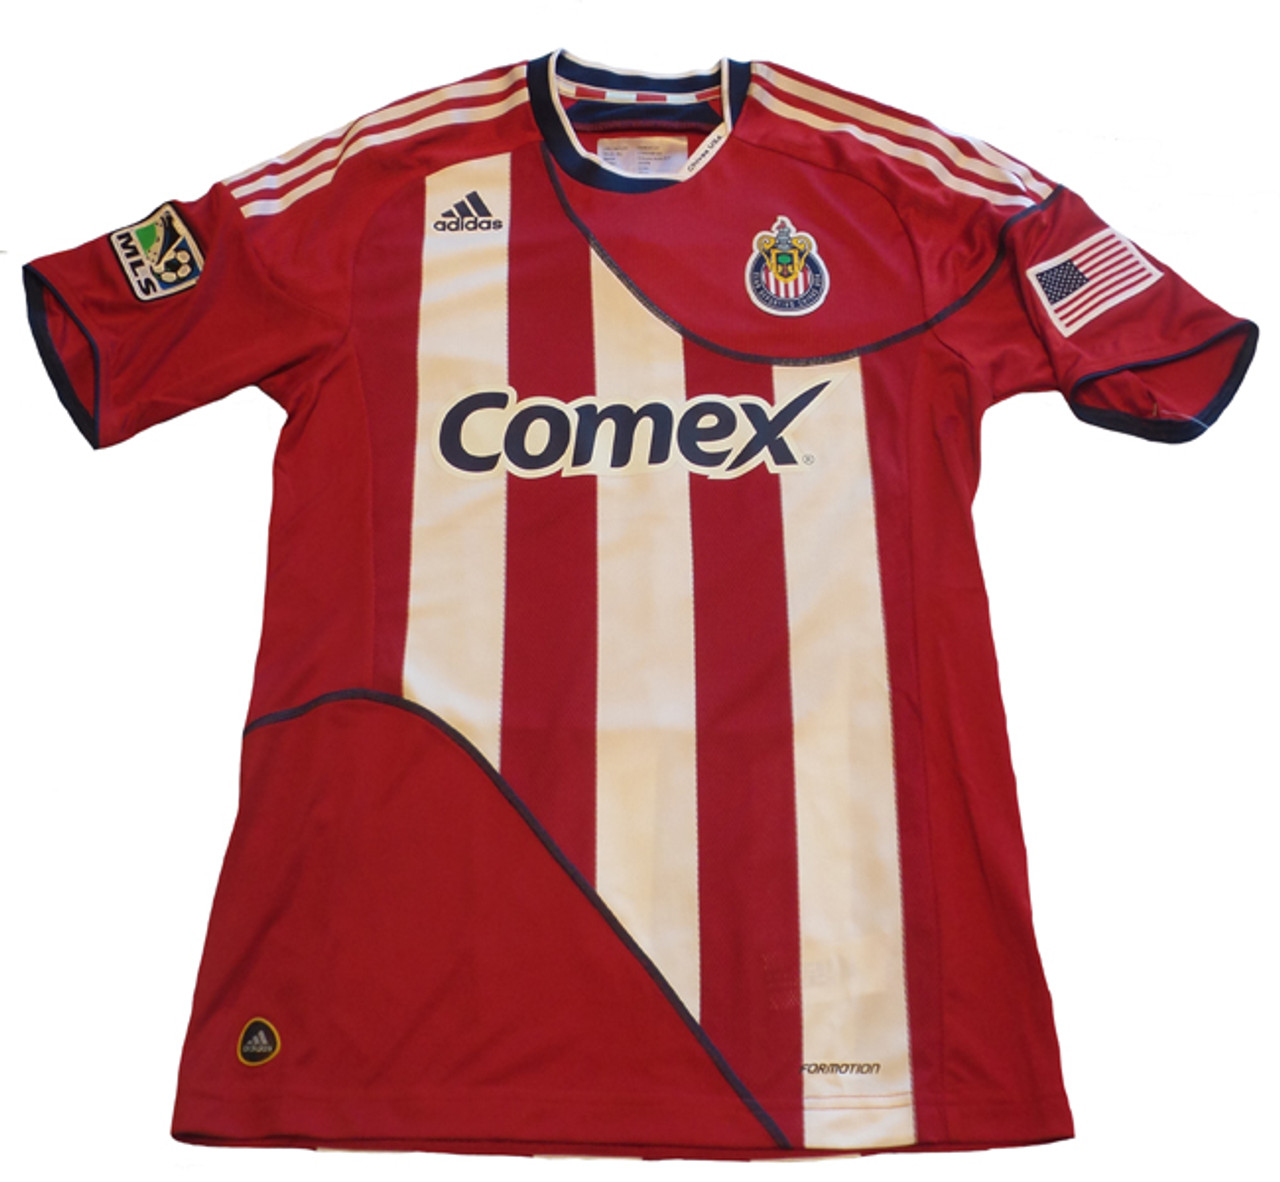 new style 63ded b15d5 ADIDAS CHIVAS US 2010 HOME AUTHENTIC JERSEY